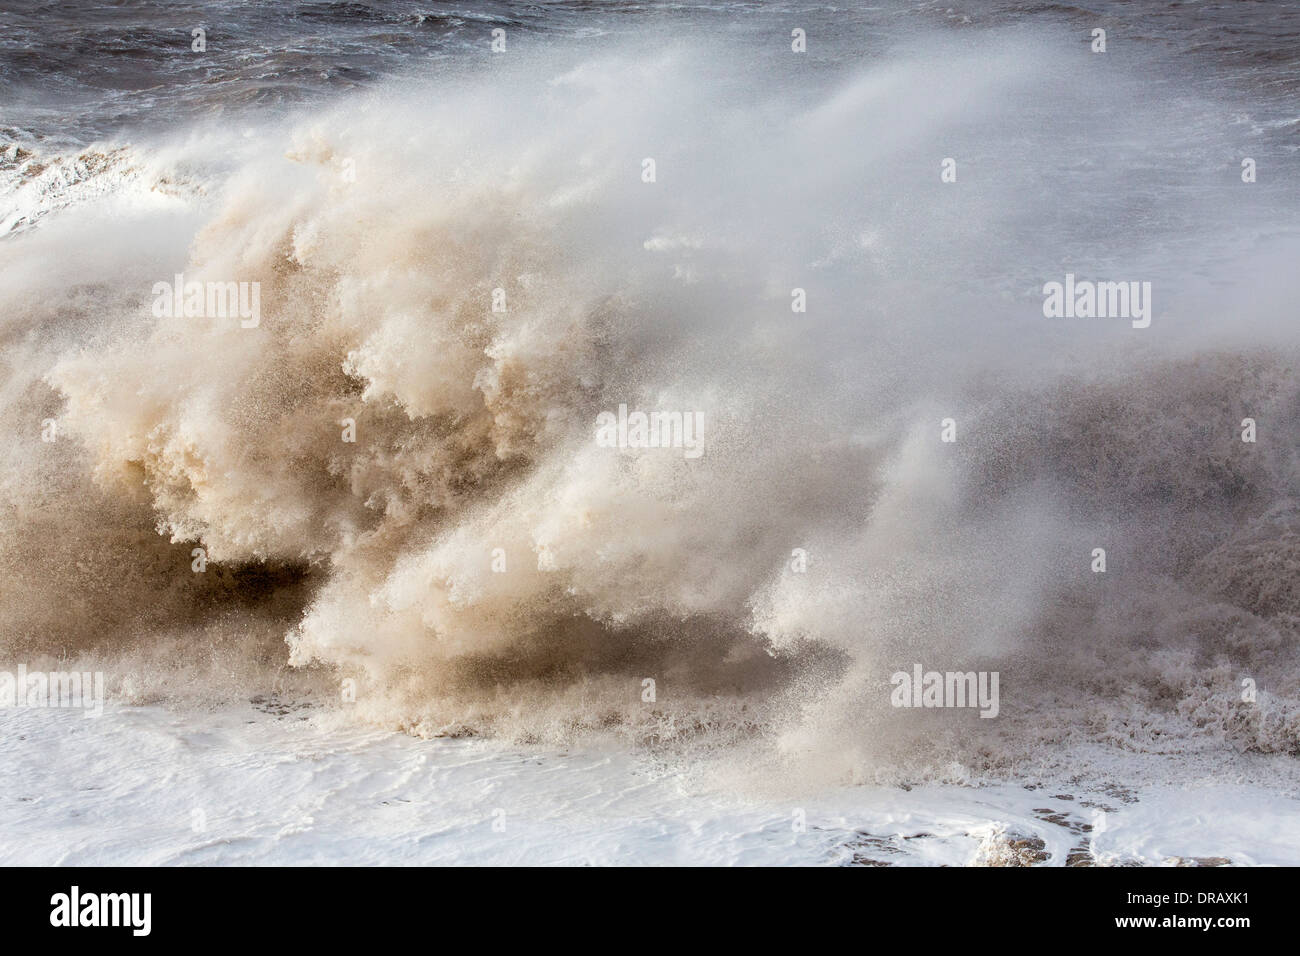 Waves crashing off Whitehaven harbour during the January 2014 period of storm surge, high tides and storm force winds. - Stock Image